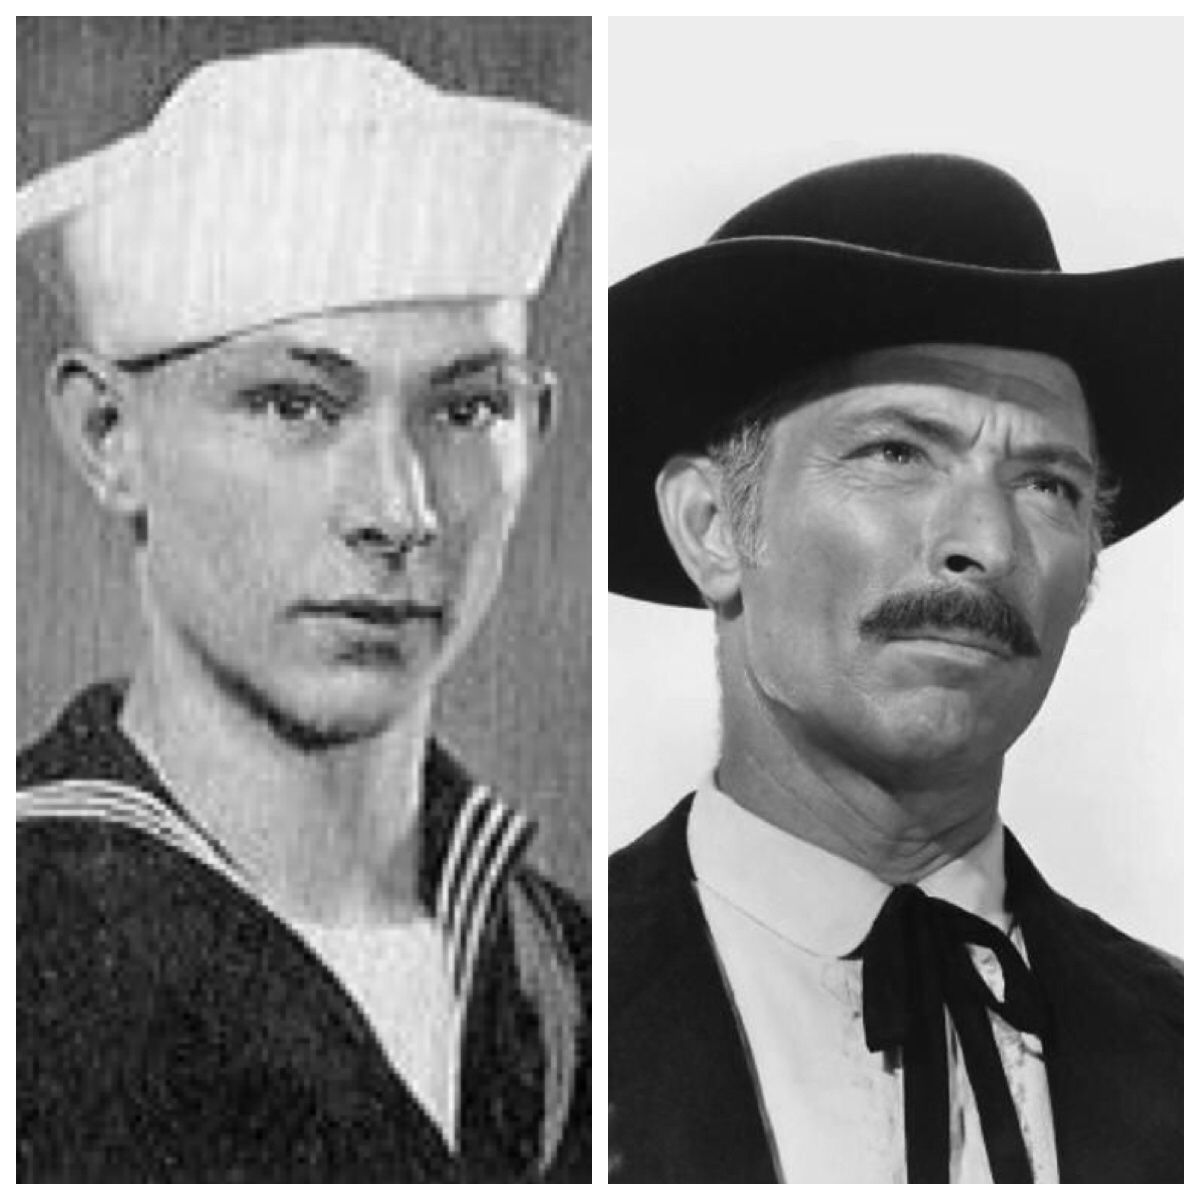 Lee Van Cleef-Navy-WW2-submarine chaser and mini sweeper